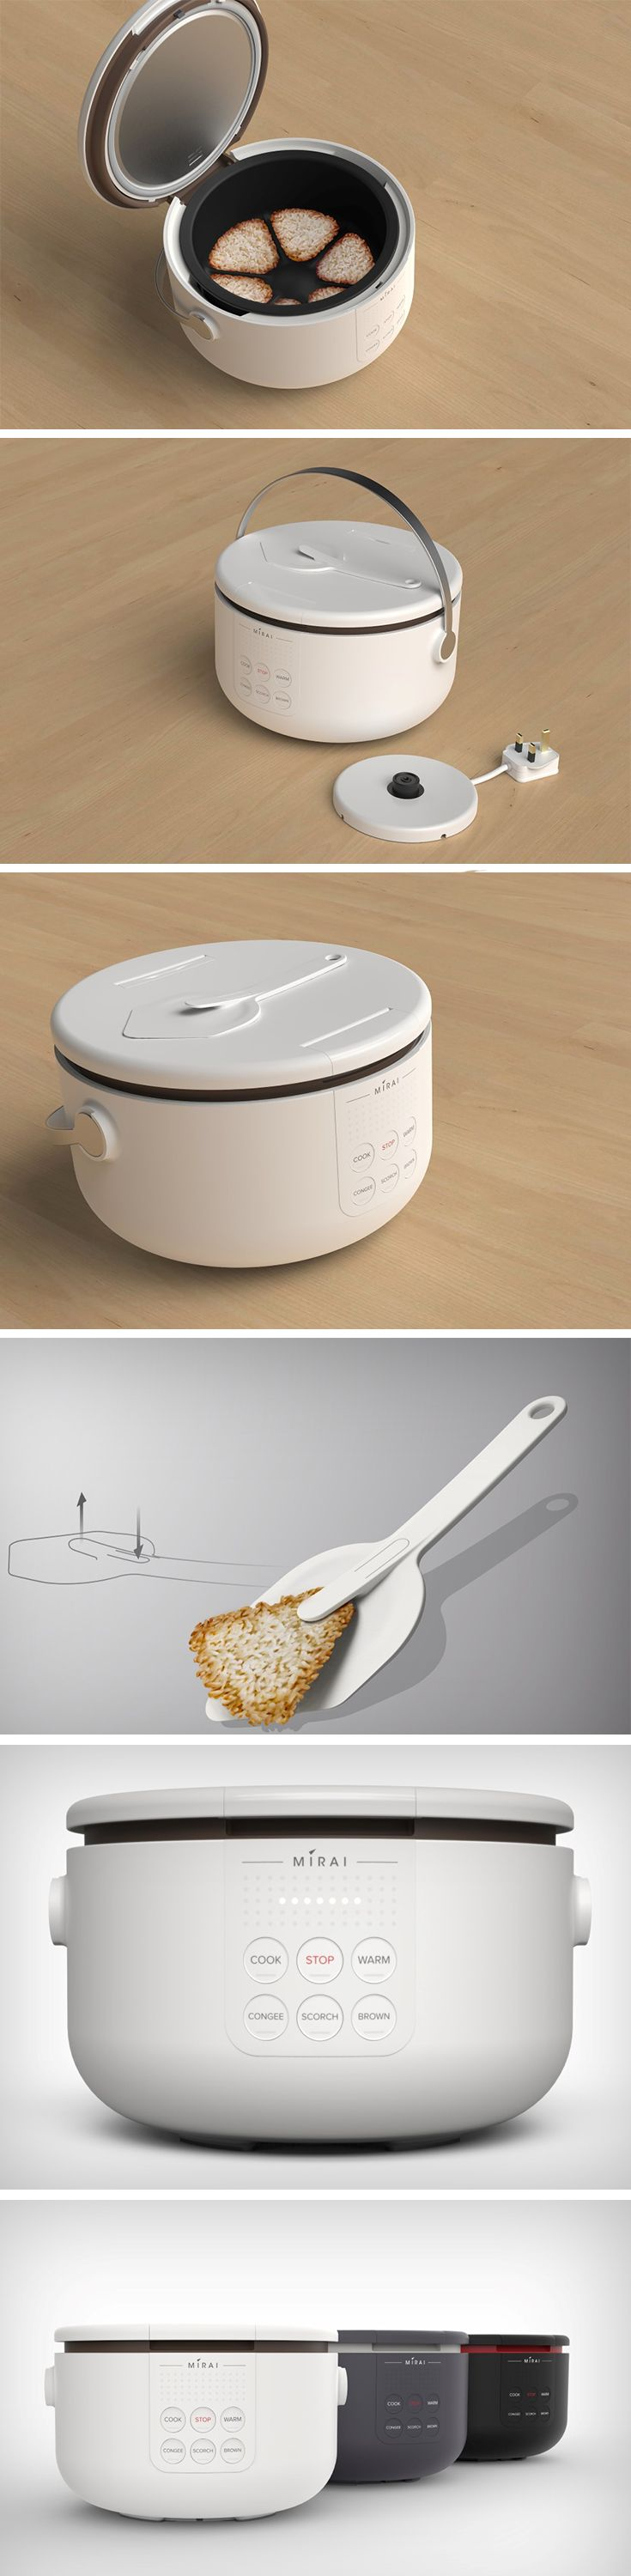 Ronald Tan's idea is that even a small portion of leftover rice is food nevertheless, and should not be treated as waste. The Mirai Rice Cooker is designed to not just flawlessly cook your rice (with multiple settings on its control panel), but it also allows you to transform your leftover rice into crispy rice cakes for a post-meal snack!